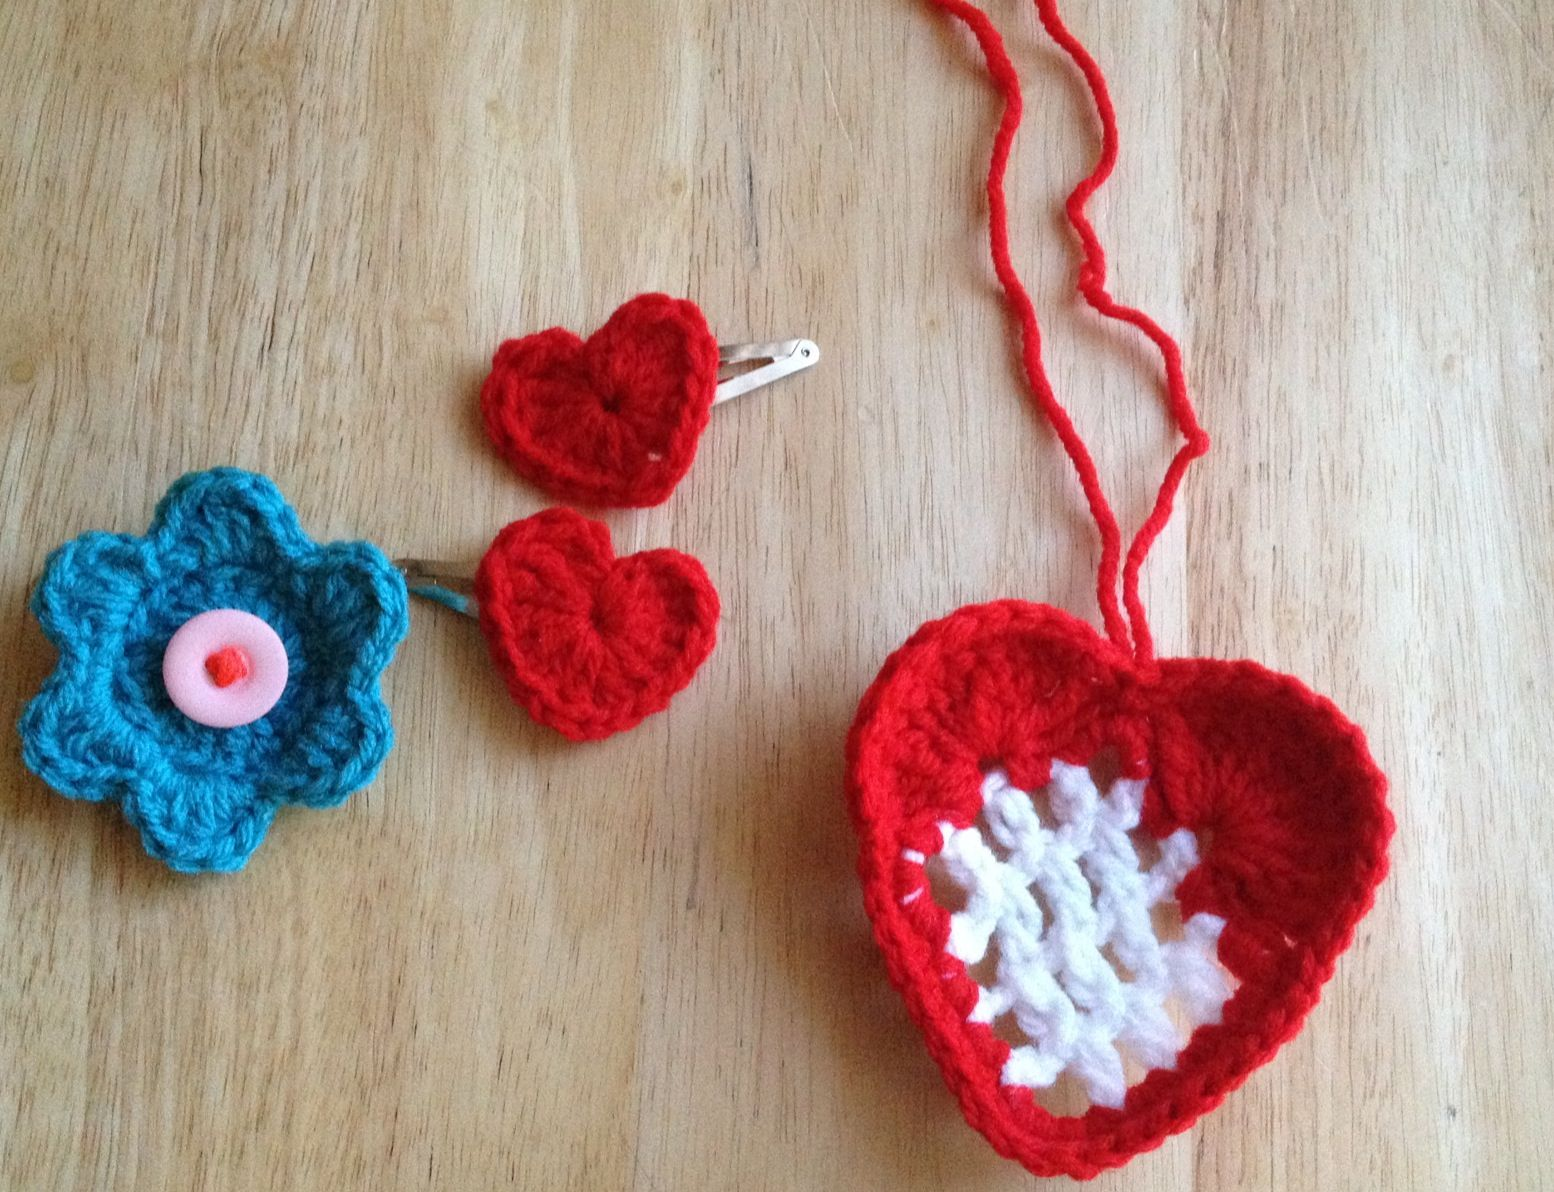 Crochet hair clips and heart! crochet Pinterest